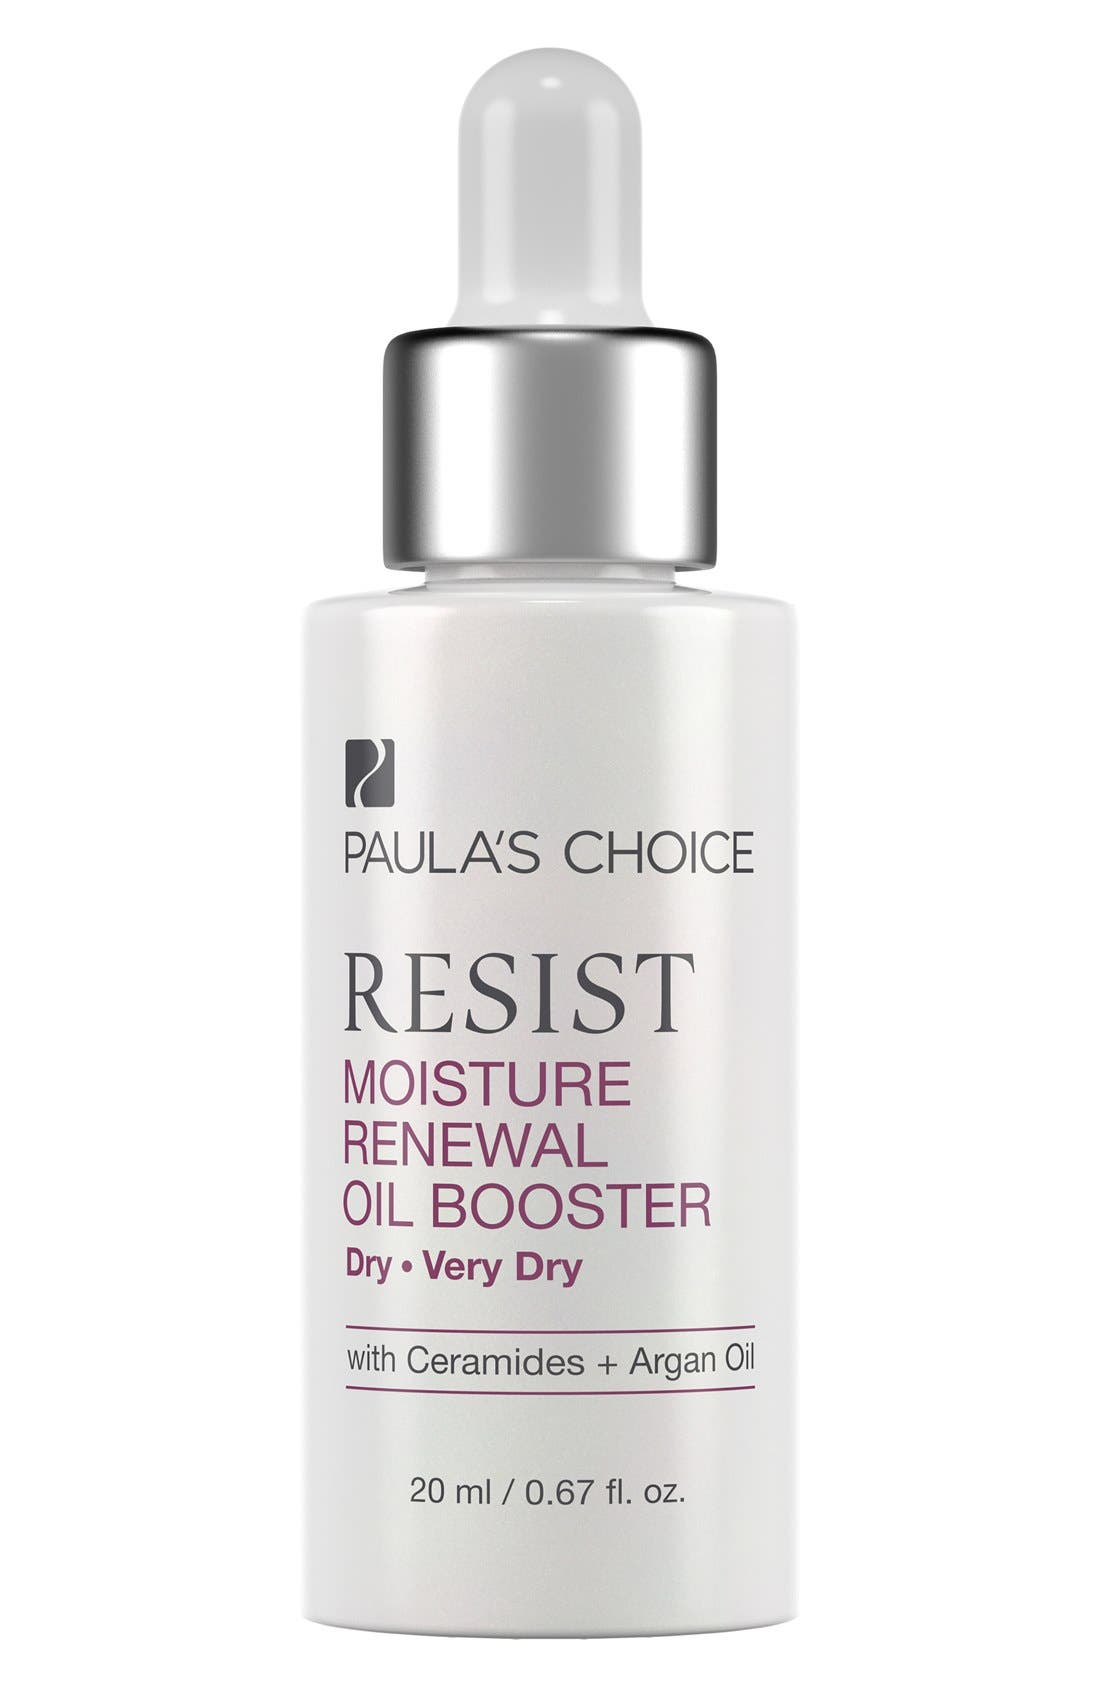 Paula's Choice Resist Moisture Renewal Oil Booster